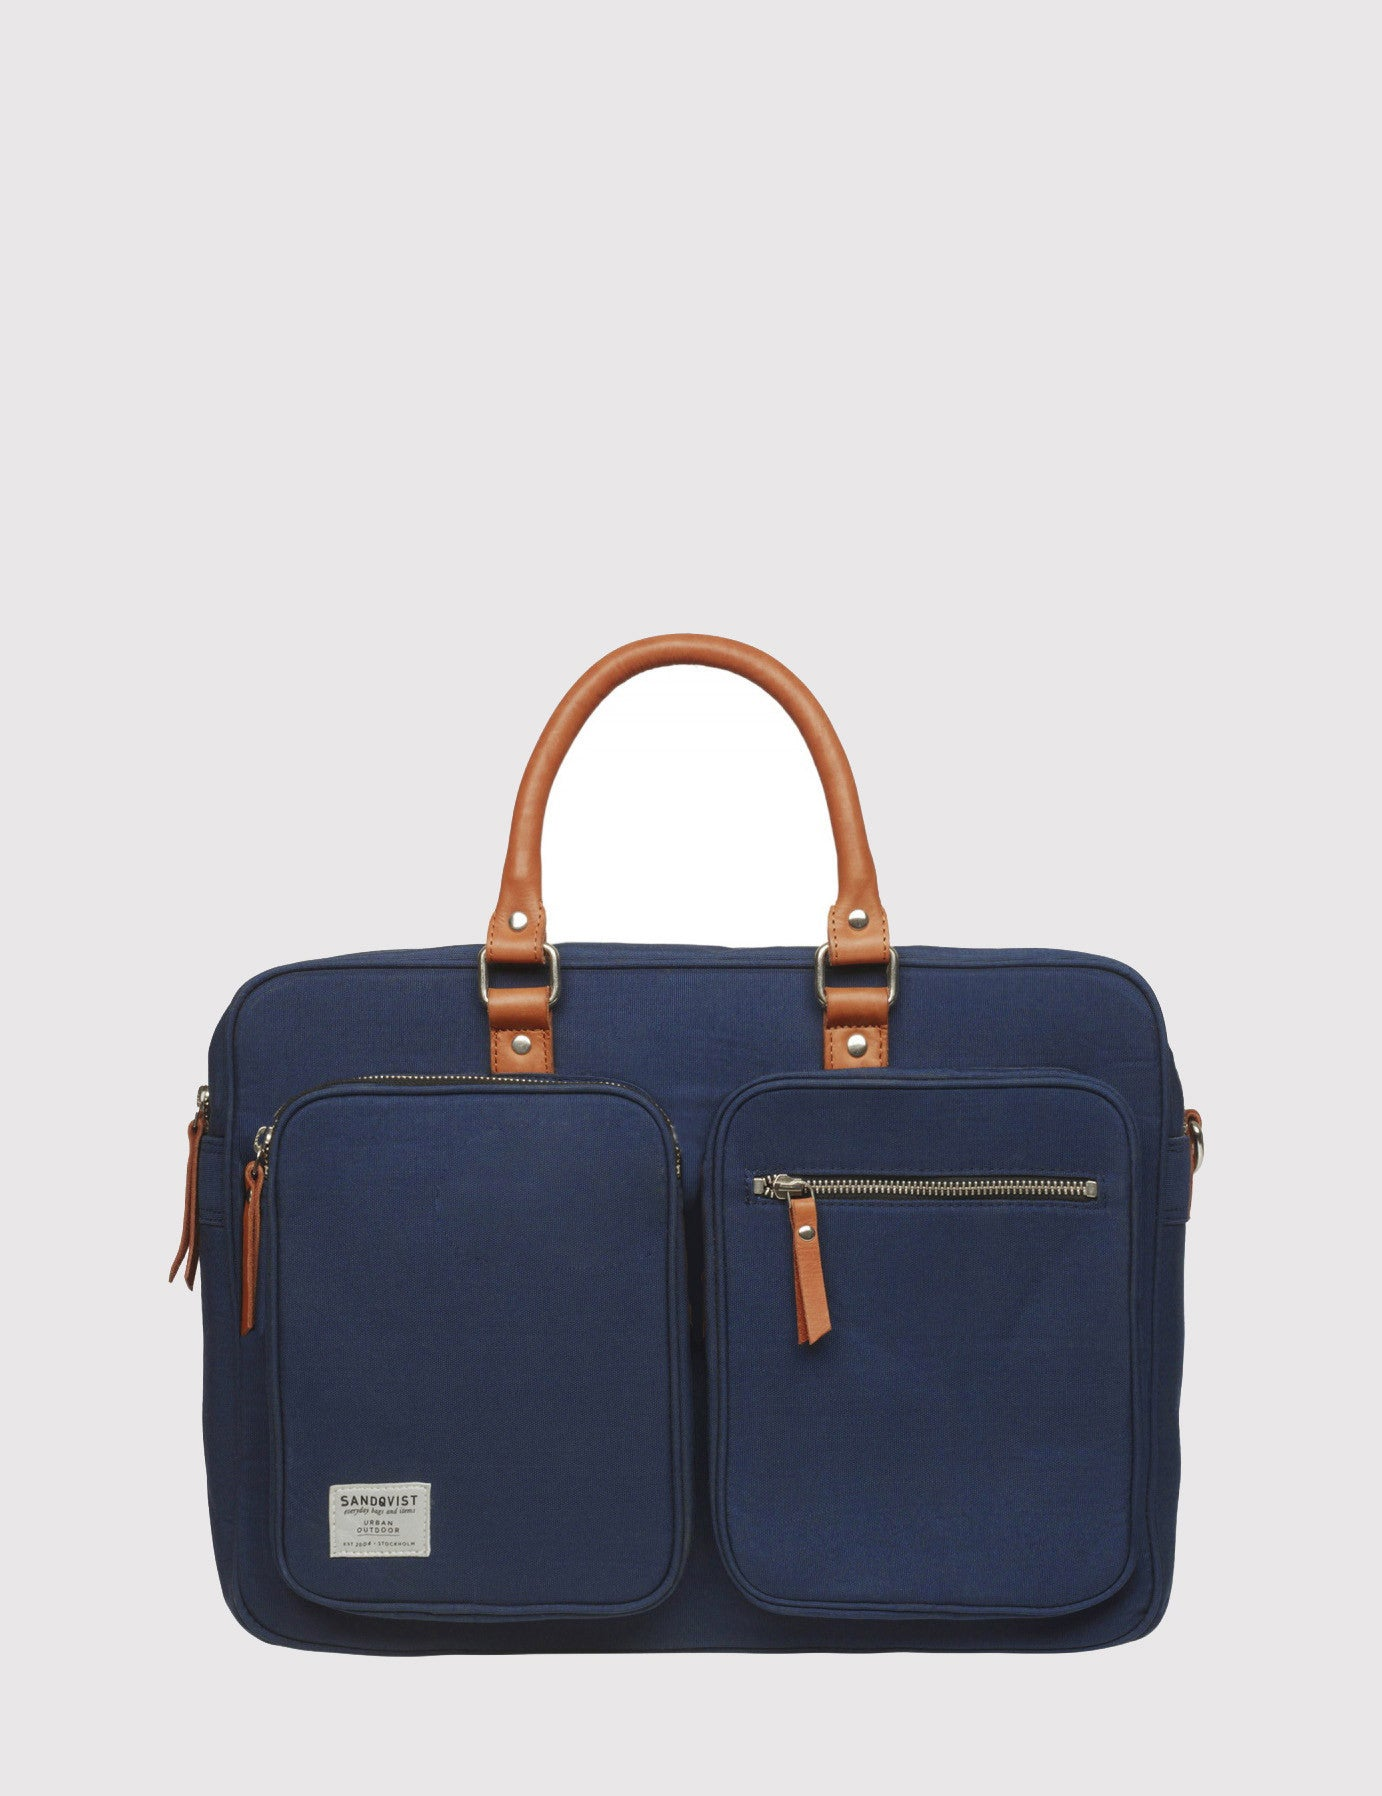 Sandqvist Arne Laptop Bag - Blue